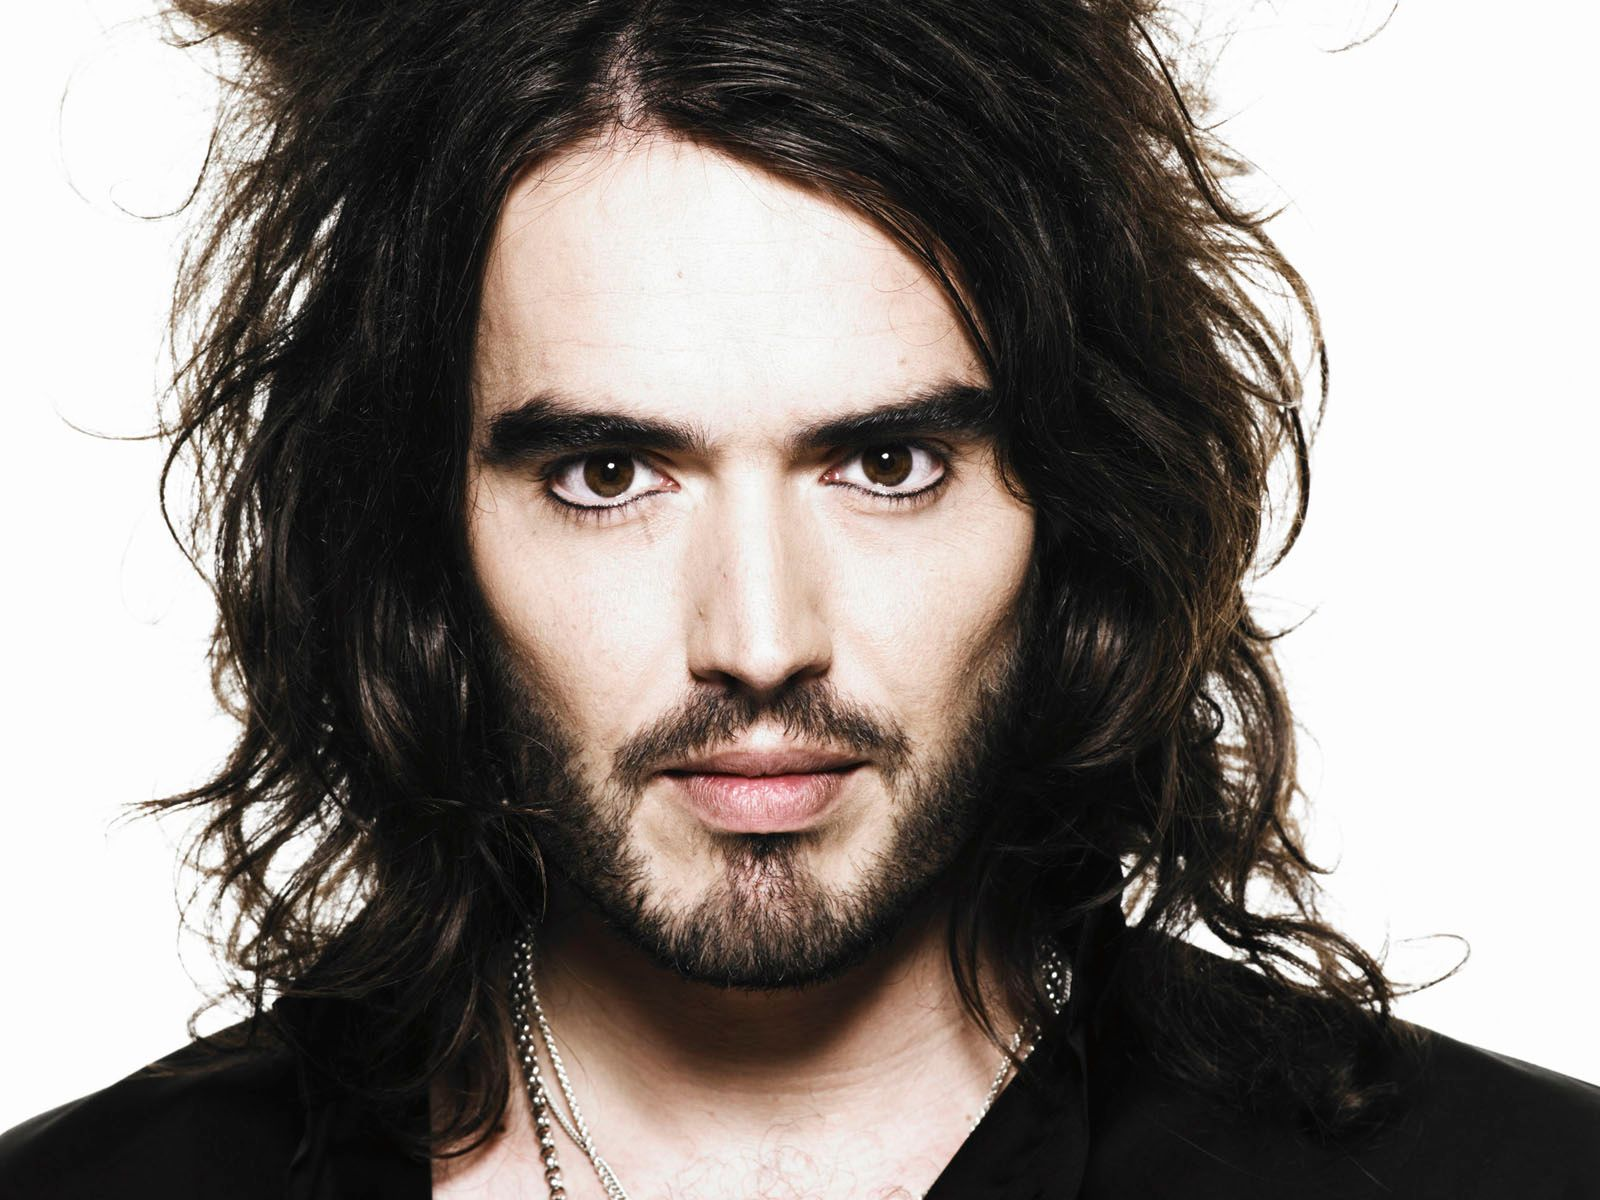 9. Russell Brand- Net Worth: $15 Million